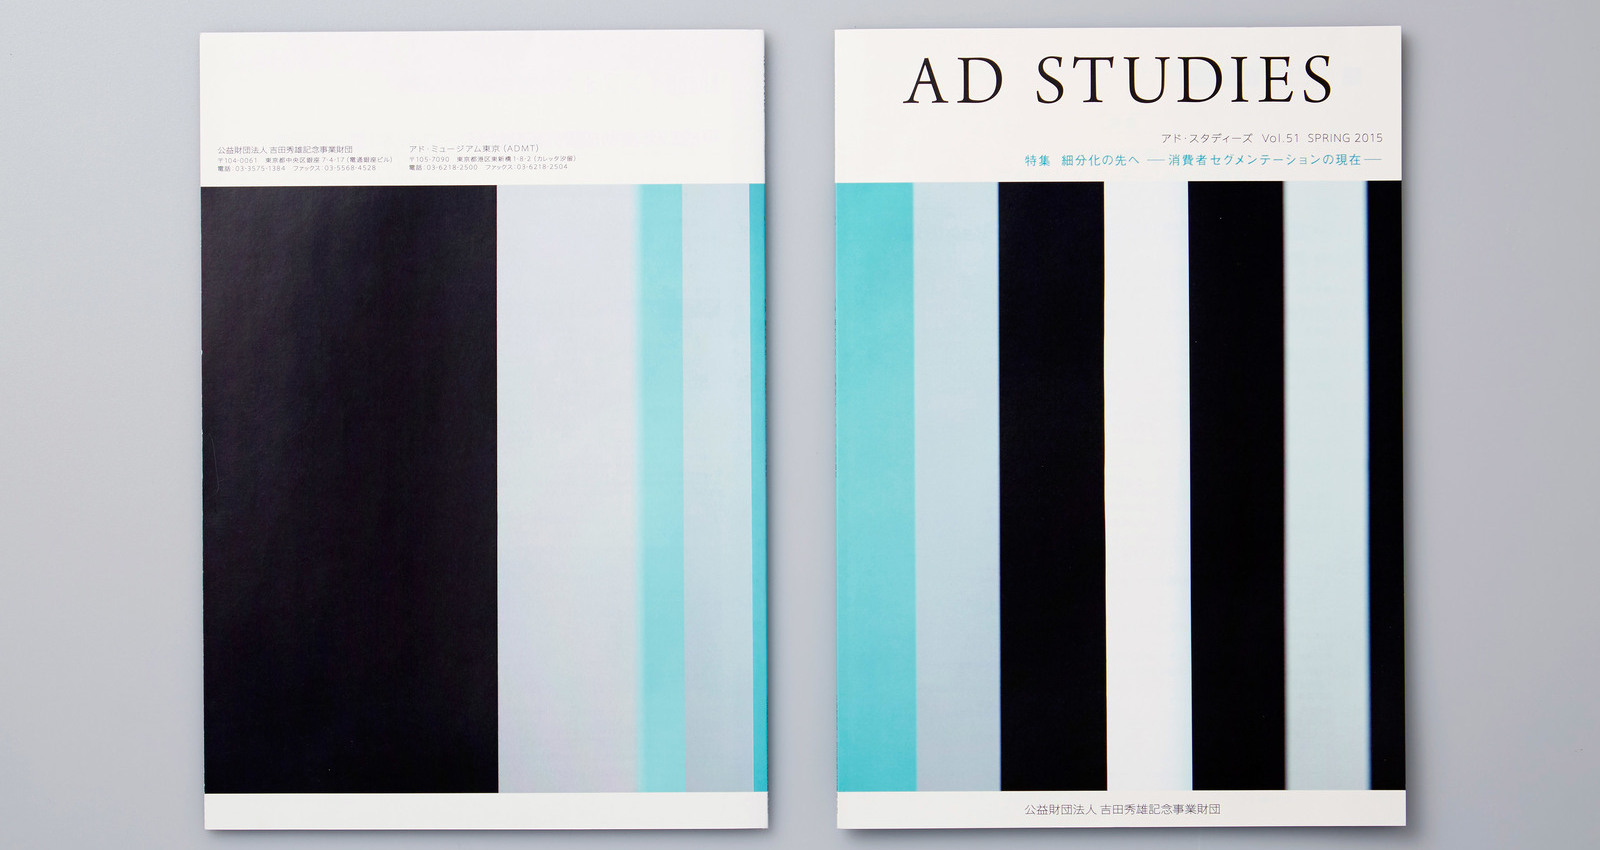 Studies of Graphic Design